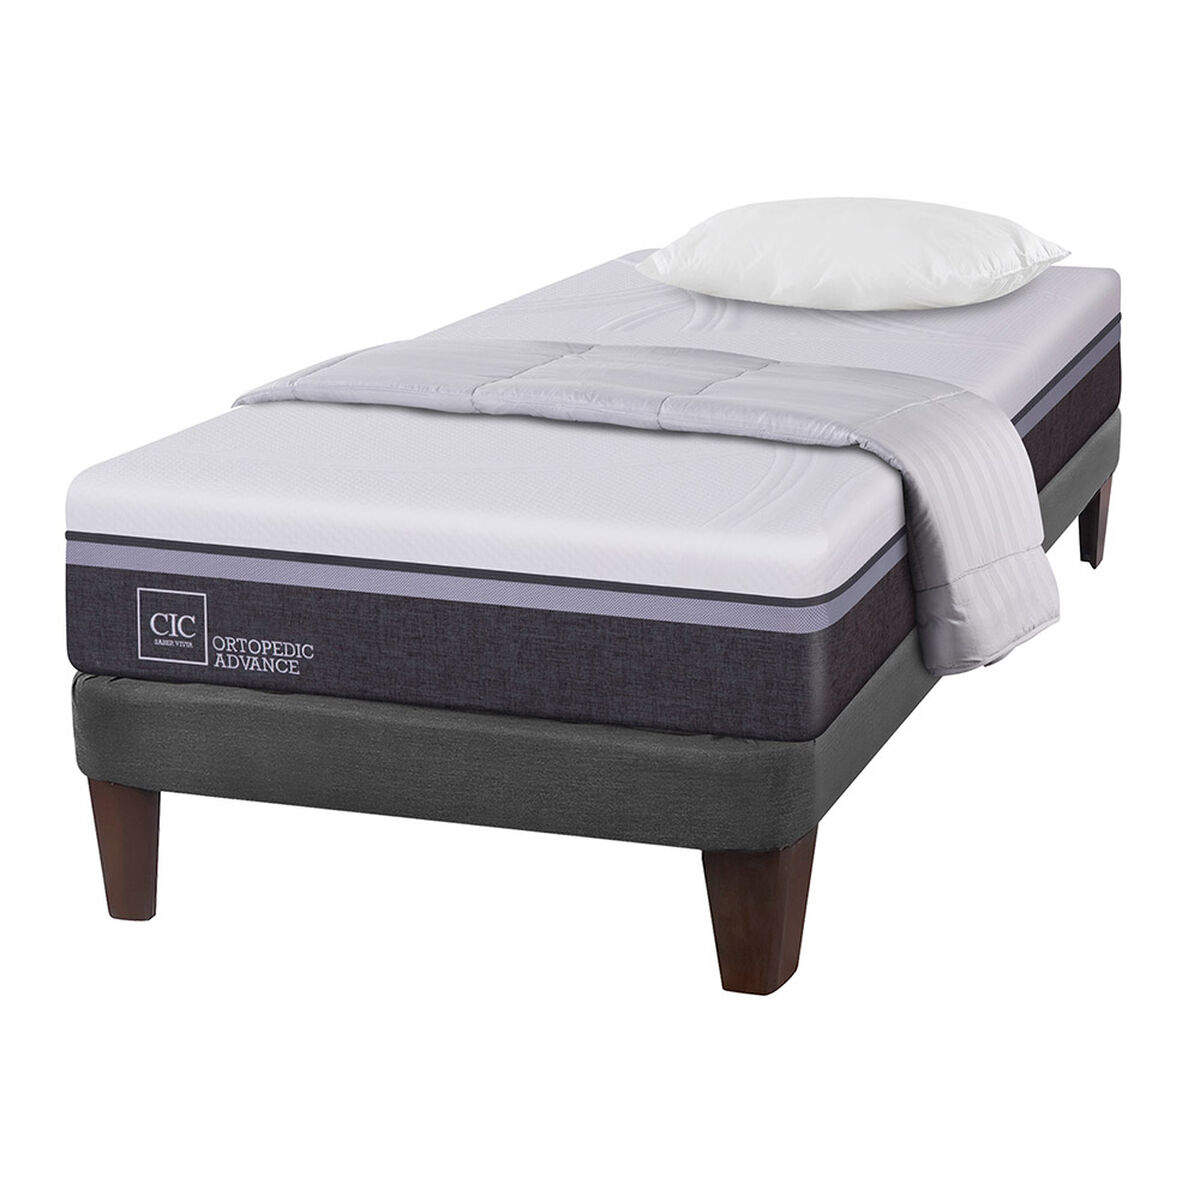 Cama Europea 1,5 Plaza Ortopedic Advance + Textil